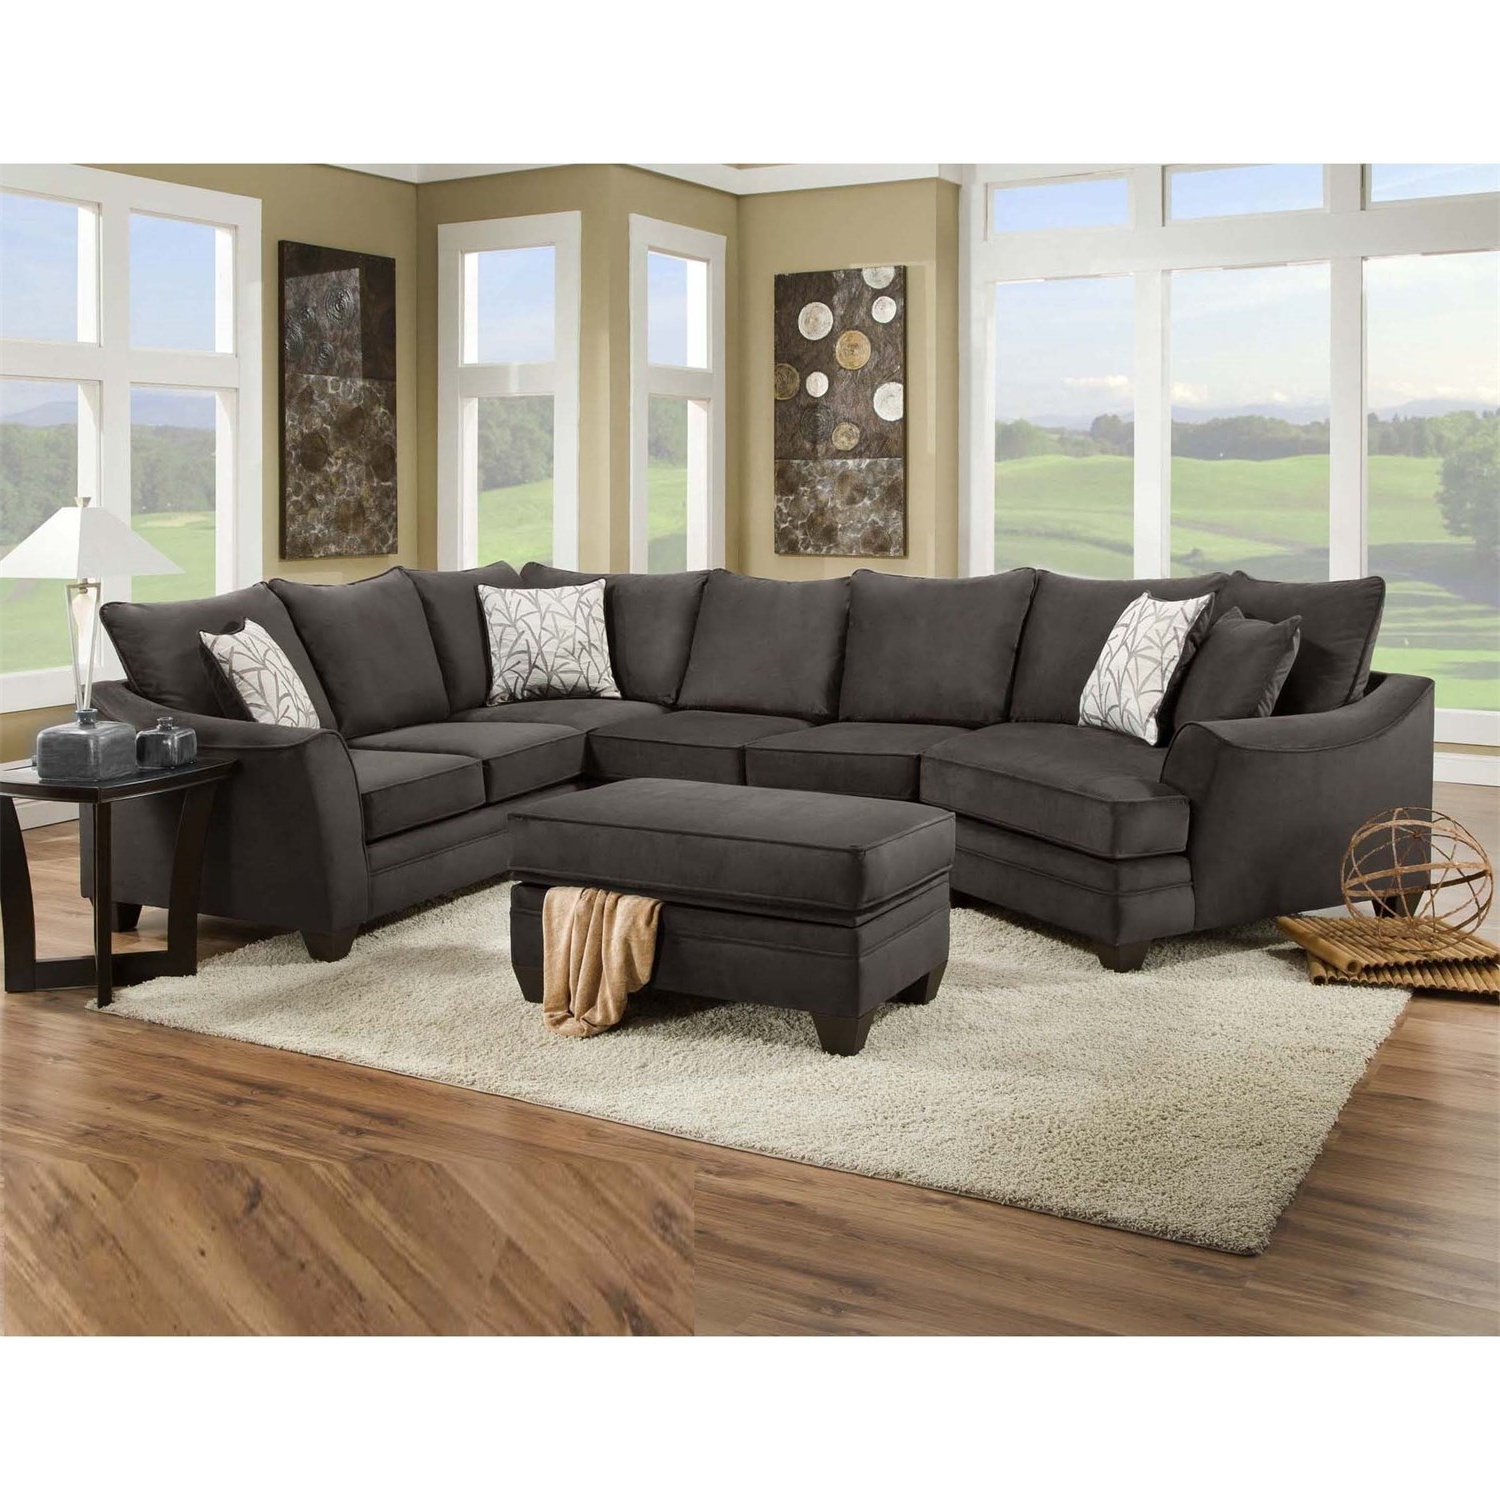 Homeclick Throughout Home Furniture Sectional Sofas (View 11 of 20)